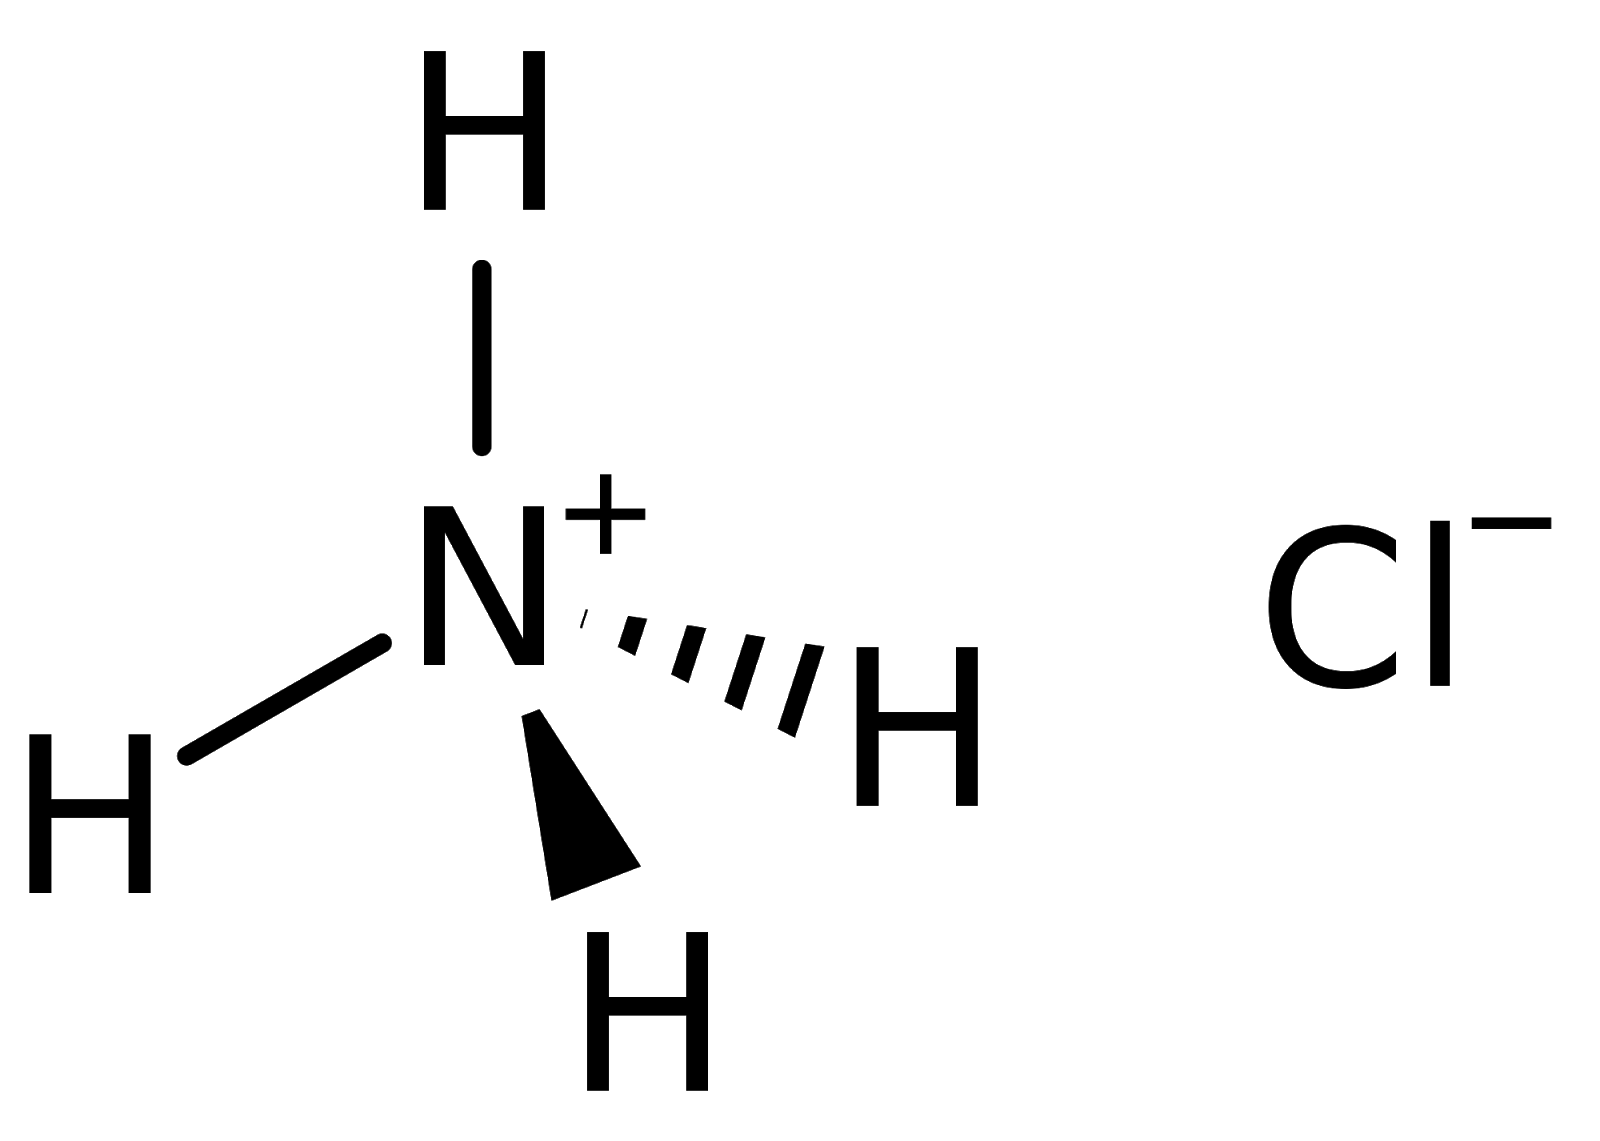 Structural Formula of Ammonium Chloride